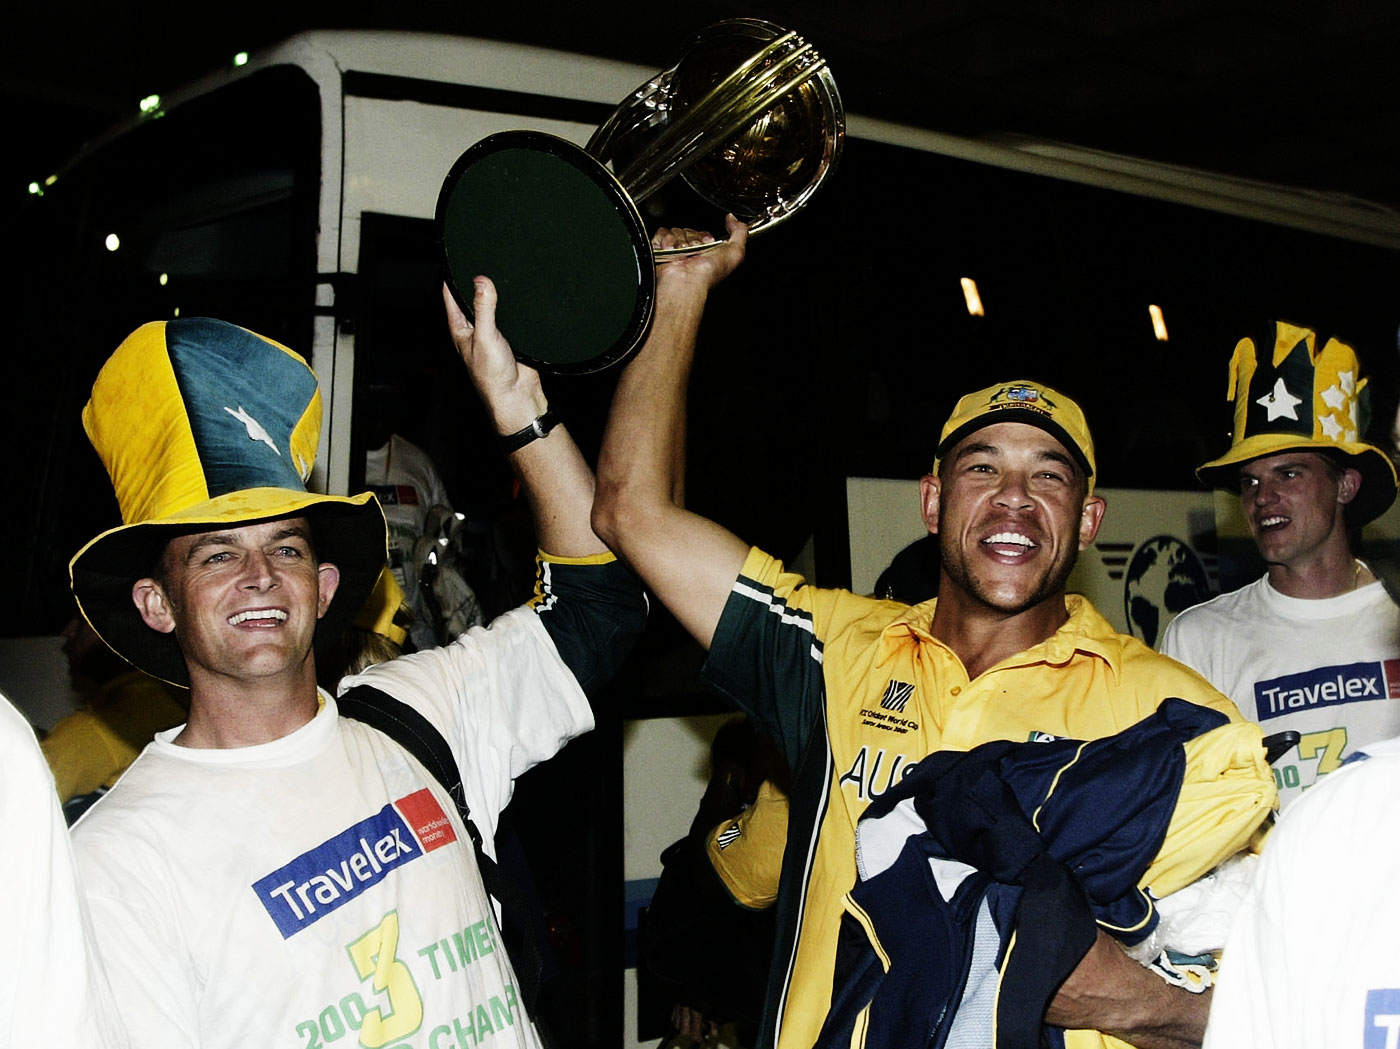 Adam Gilchrist and Andrew Symonds rejoice, not knowing what horrors await them on the flight back